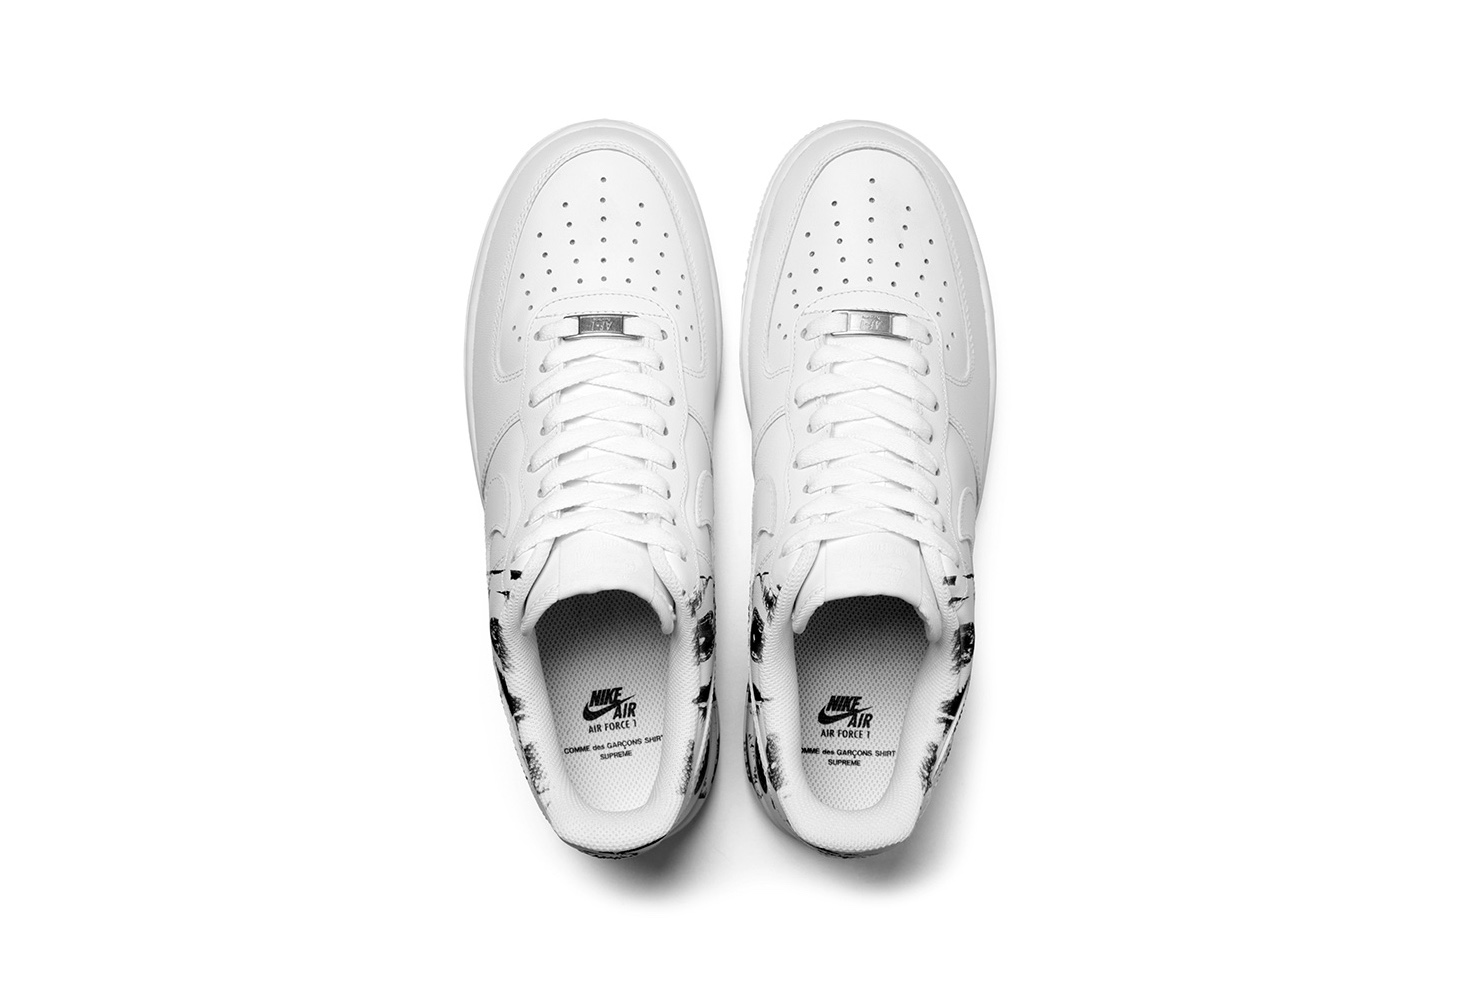 http---hypebeast.com-image-2017-05-supreme-comme-des-garcons-nike-air-force-1-low-release-info-3